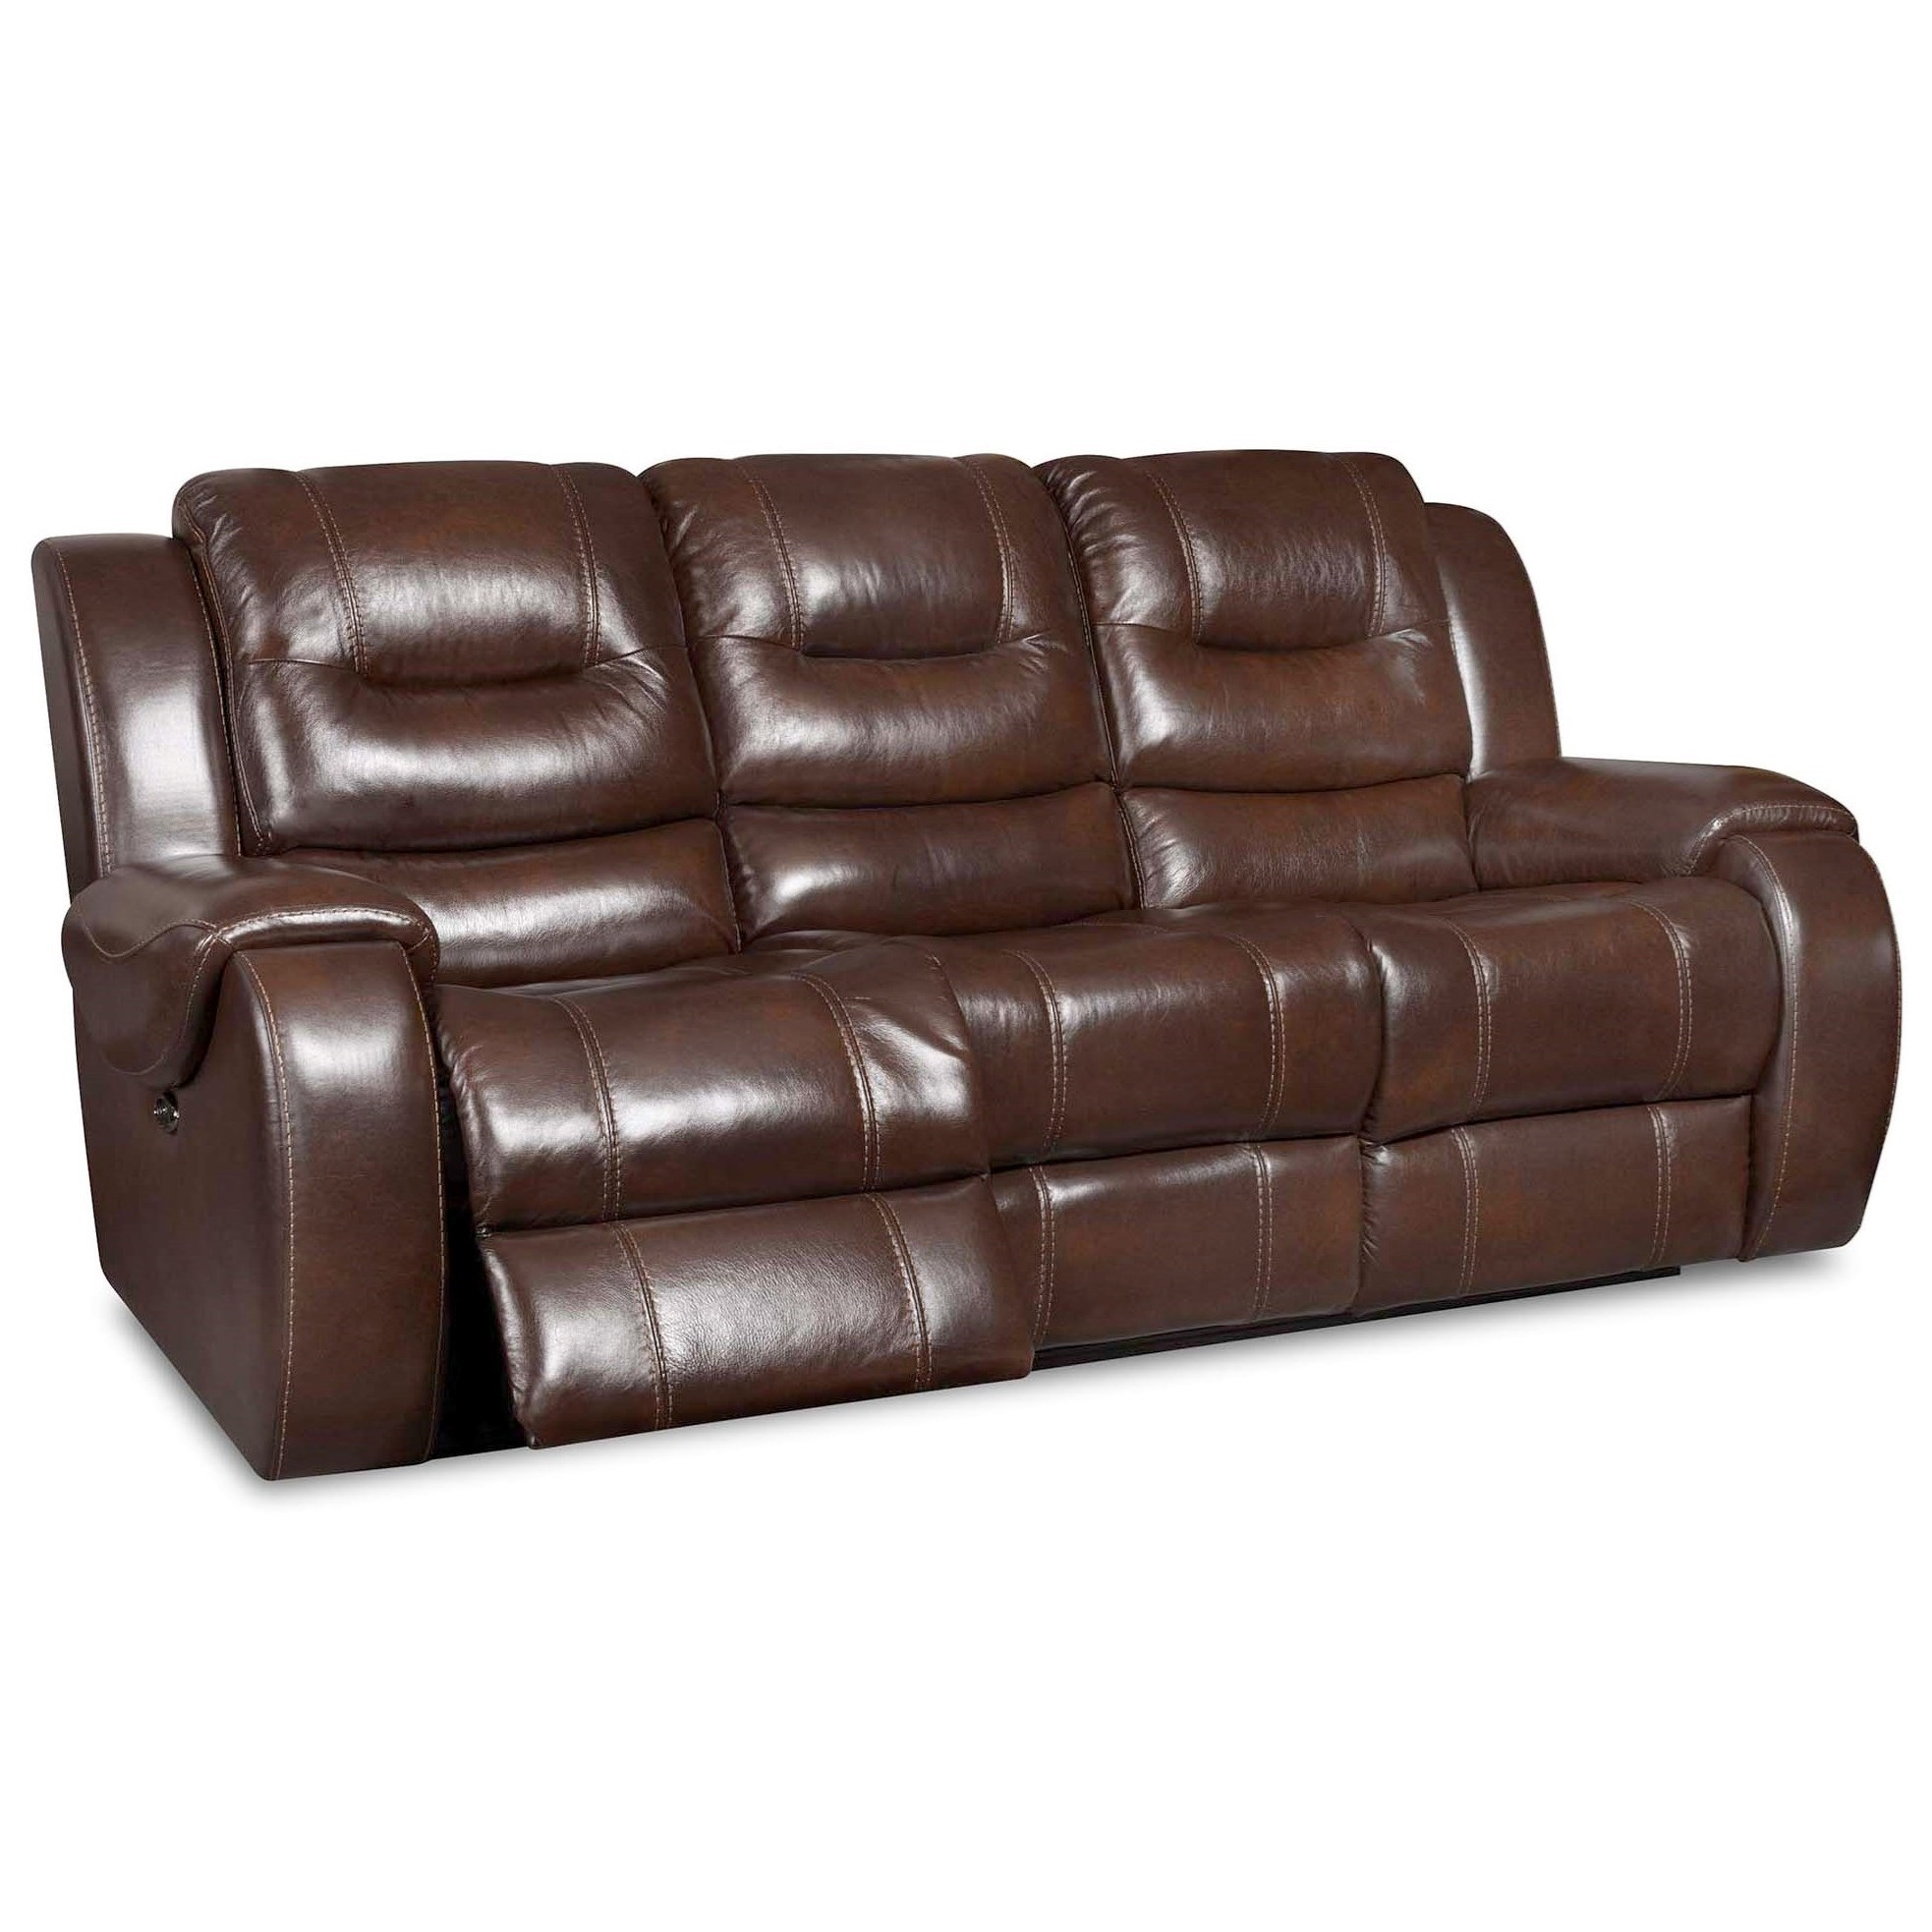 Corinthian 81401 Reclining Sofa - Item Number: 81401-30-MADE-OUT